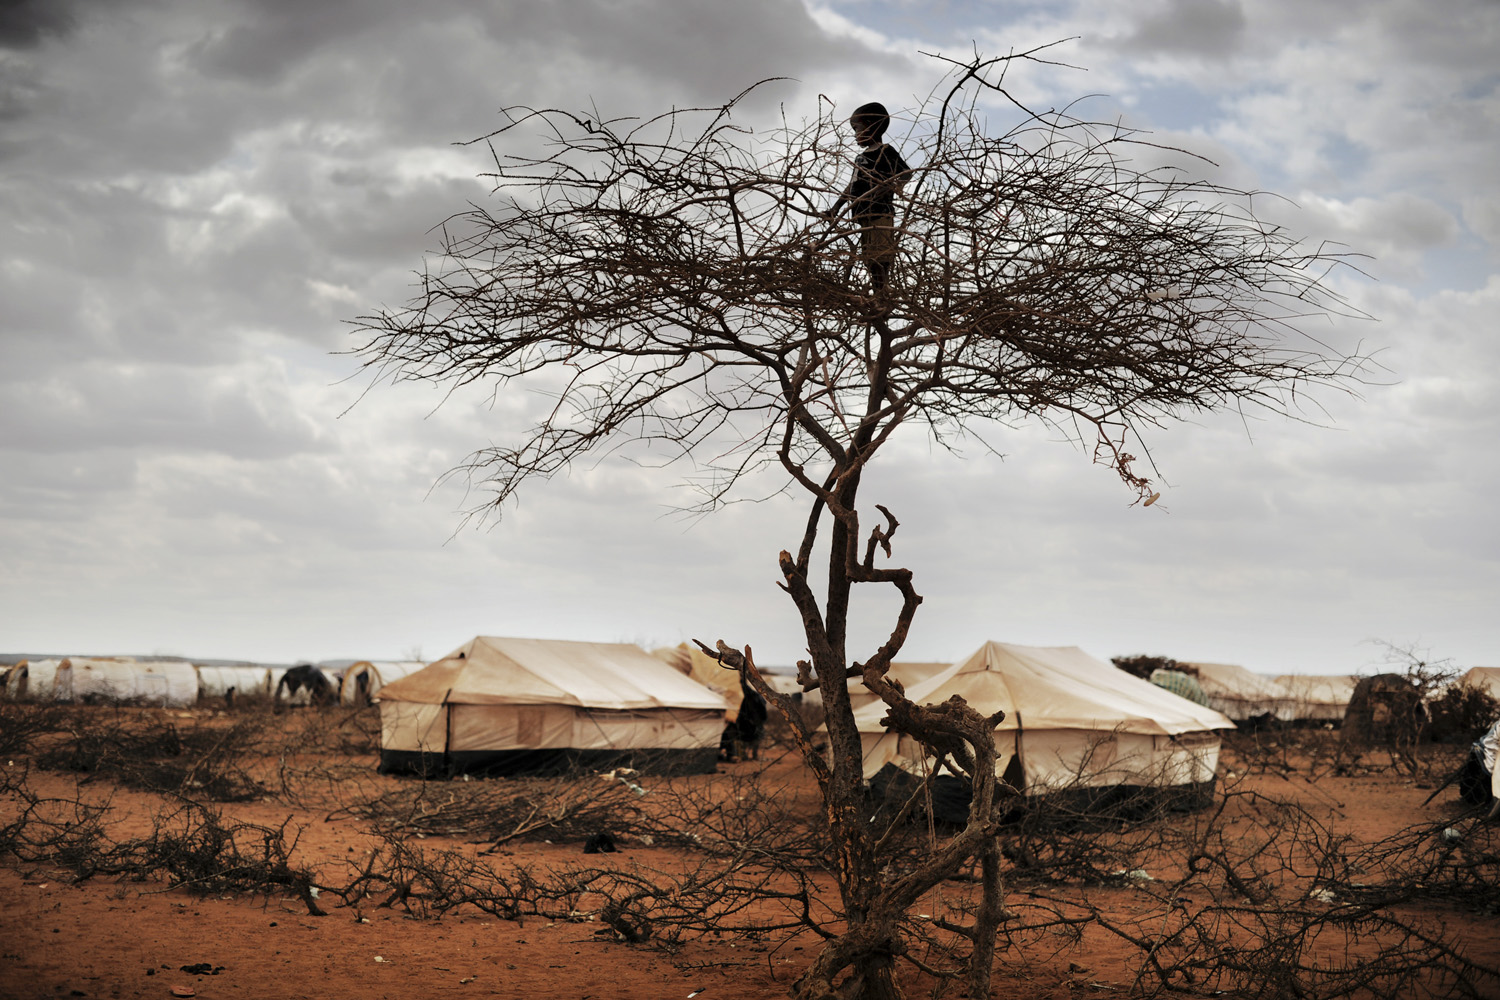 October 8, 2011. In the refugee camp  Hilaweyn,  also called  Hells wind,  a small boy overlooks the massive camp which is now grown to more than 40.000 refugees.